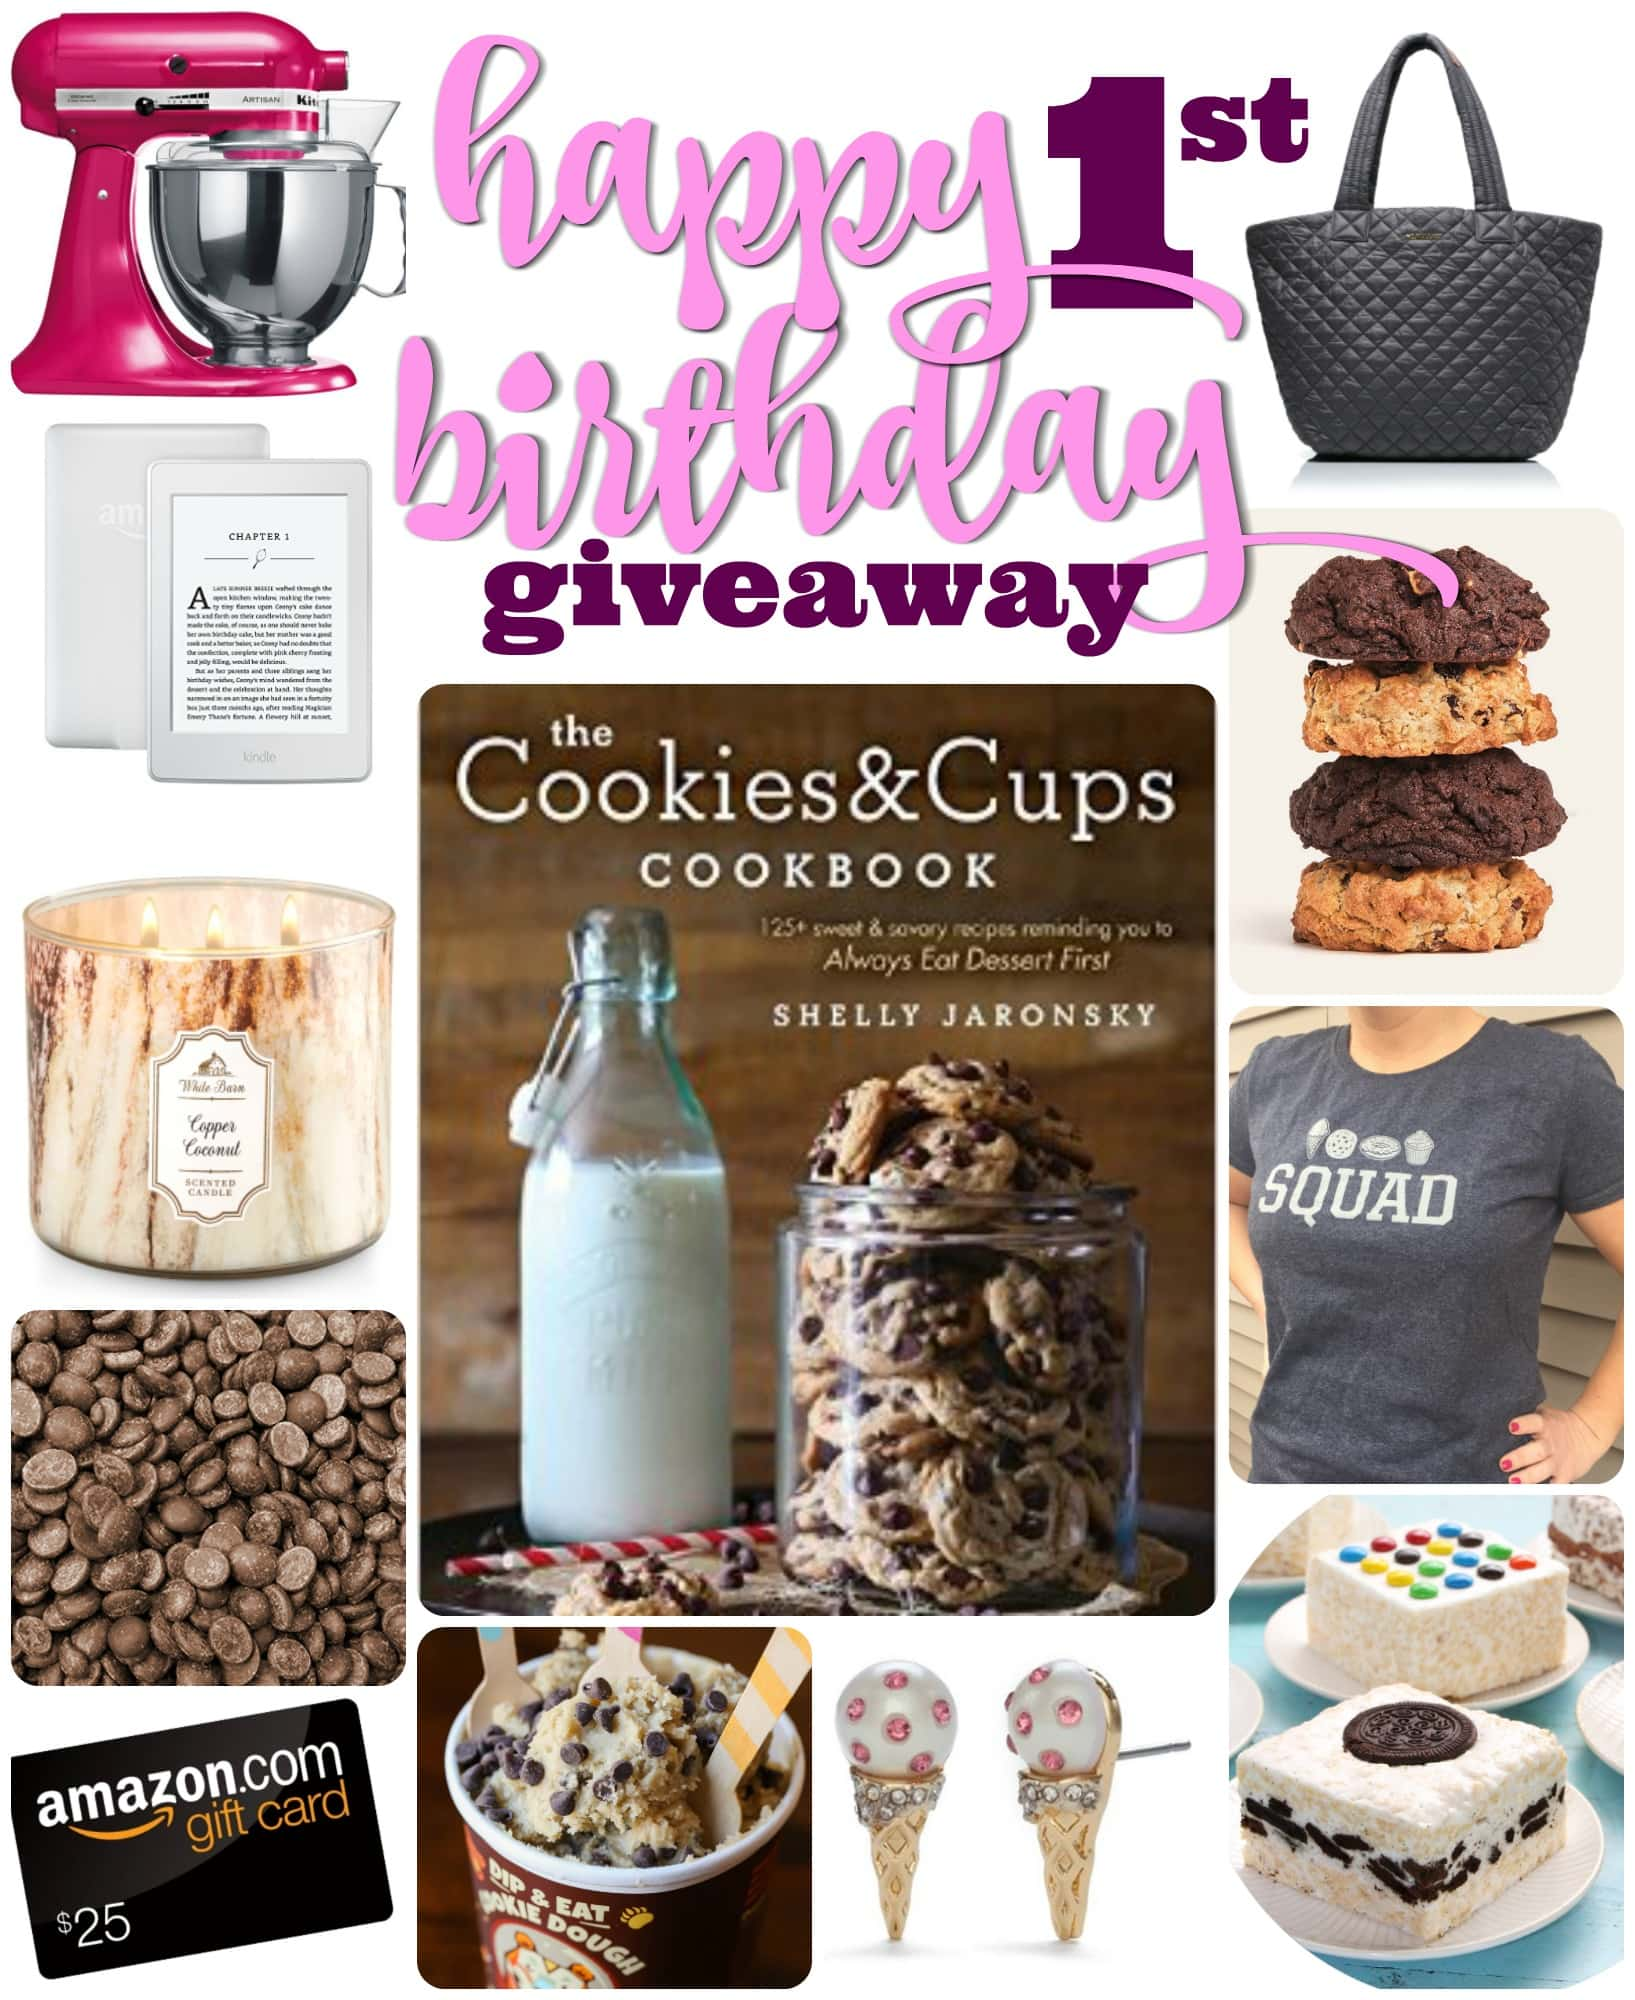 Happy Birthday Cookies & Cups Cookbook!